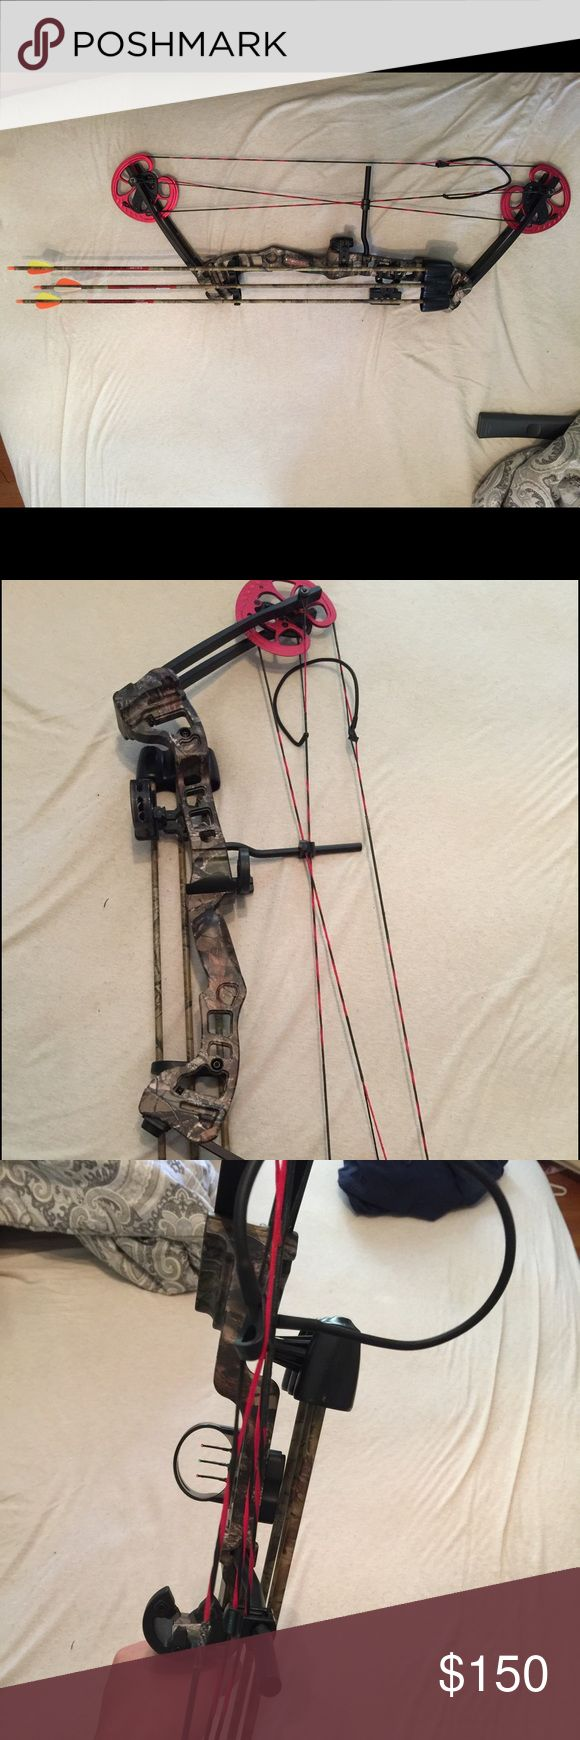 Barnett Vortex Compound Bow Brand new, never used compound bow. Pulls up to $65 pounds. Comes with accessories pictured. Bow retails for $200 by itself. Other